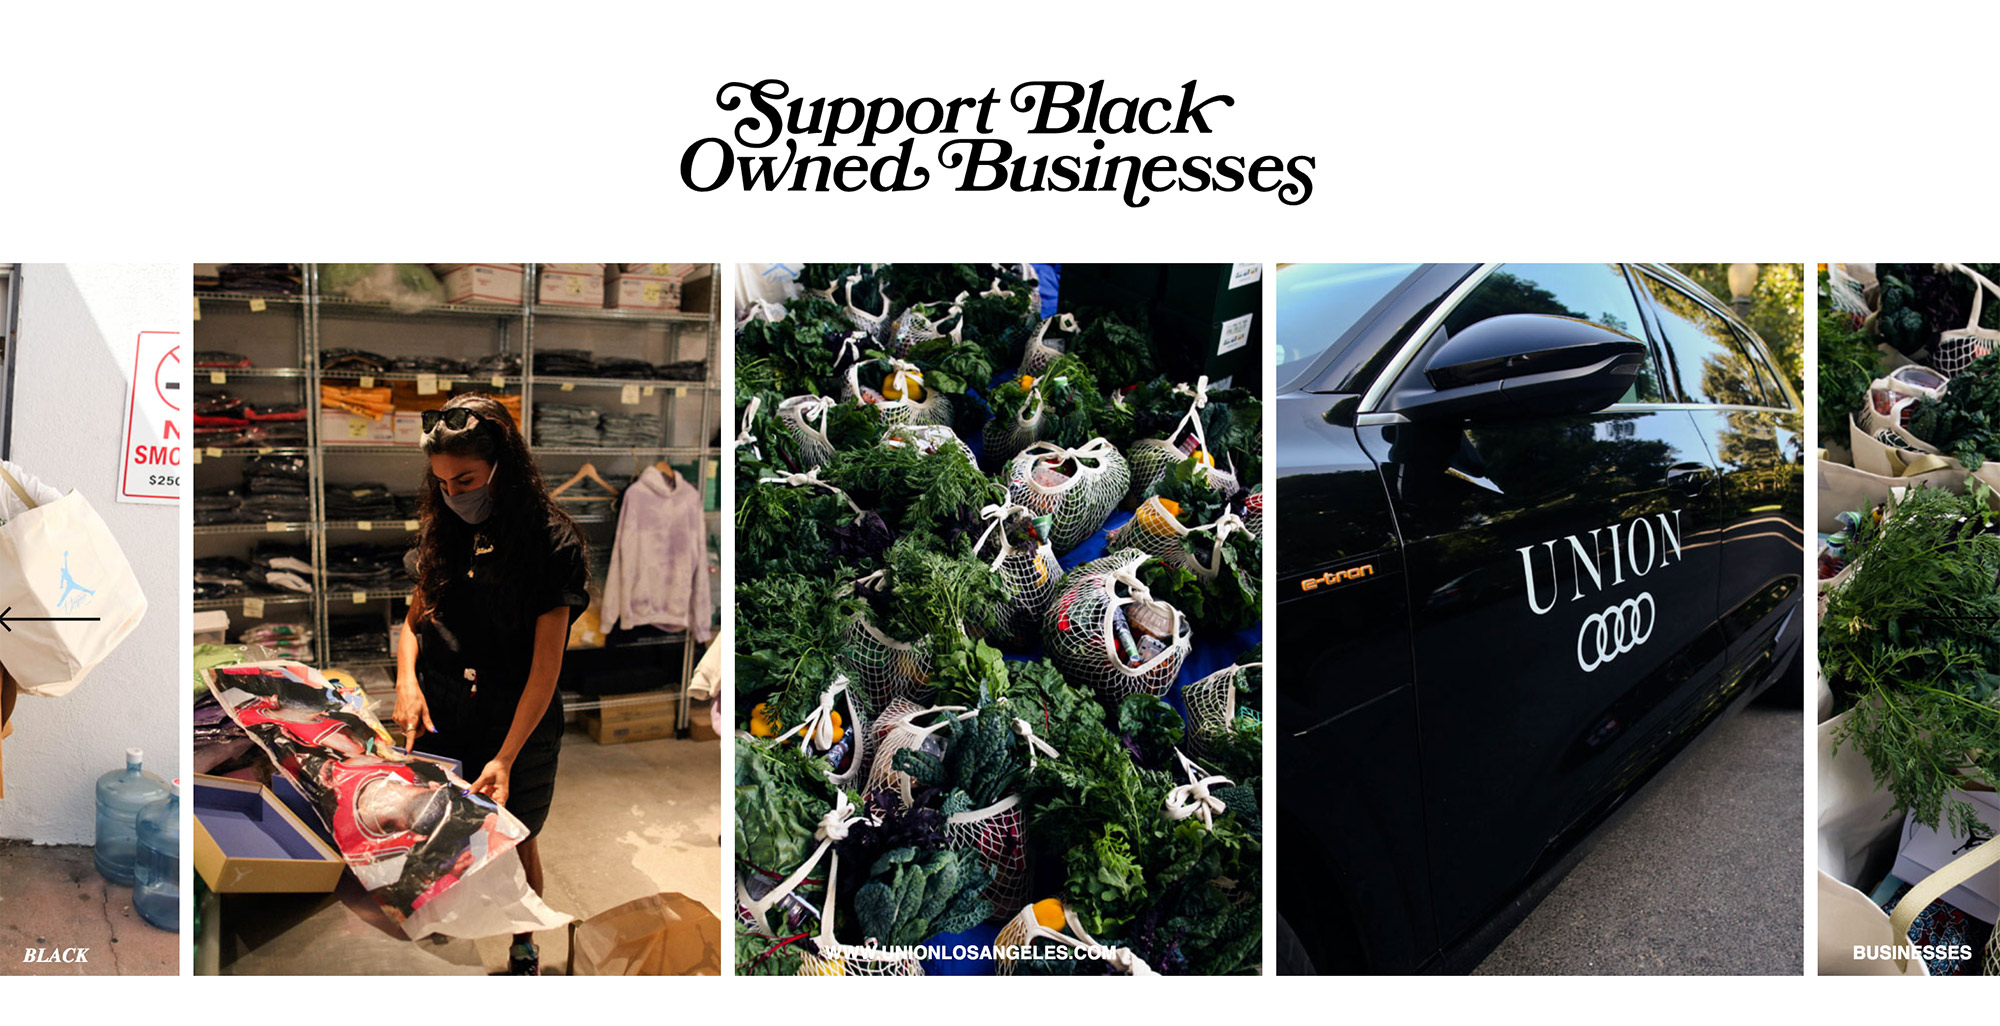 Spread Love - Union X Jordan - Support Black Owned Businesses